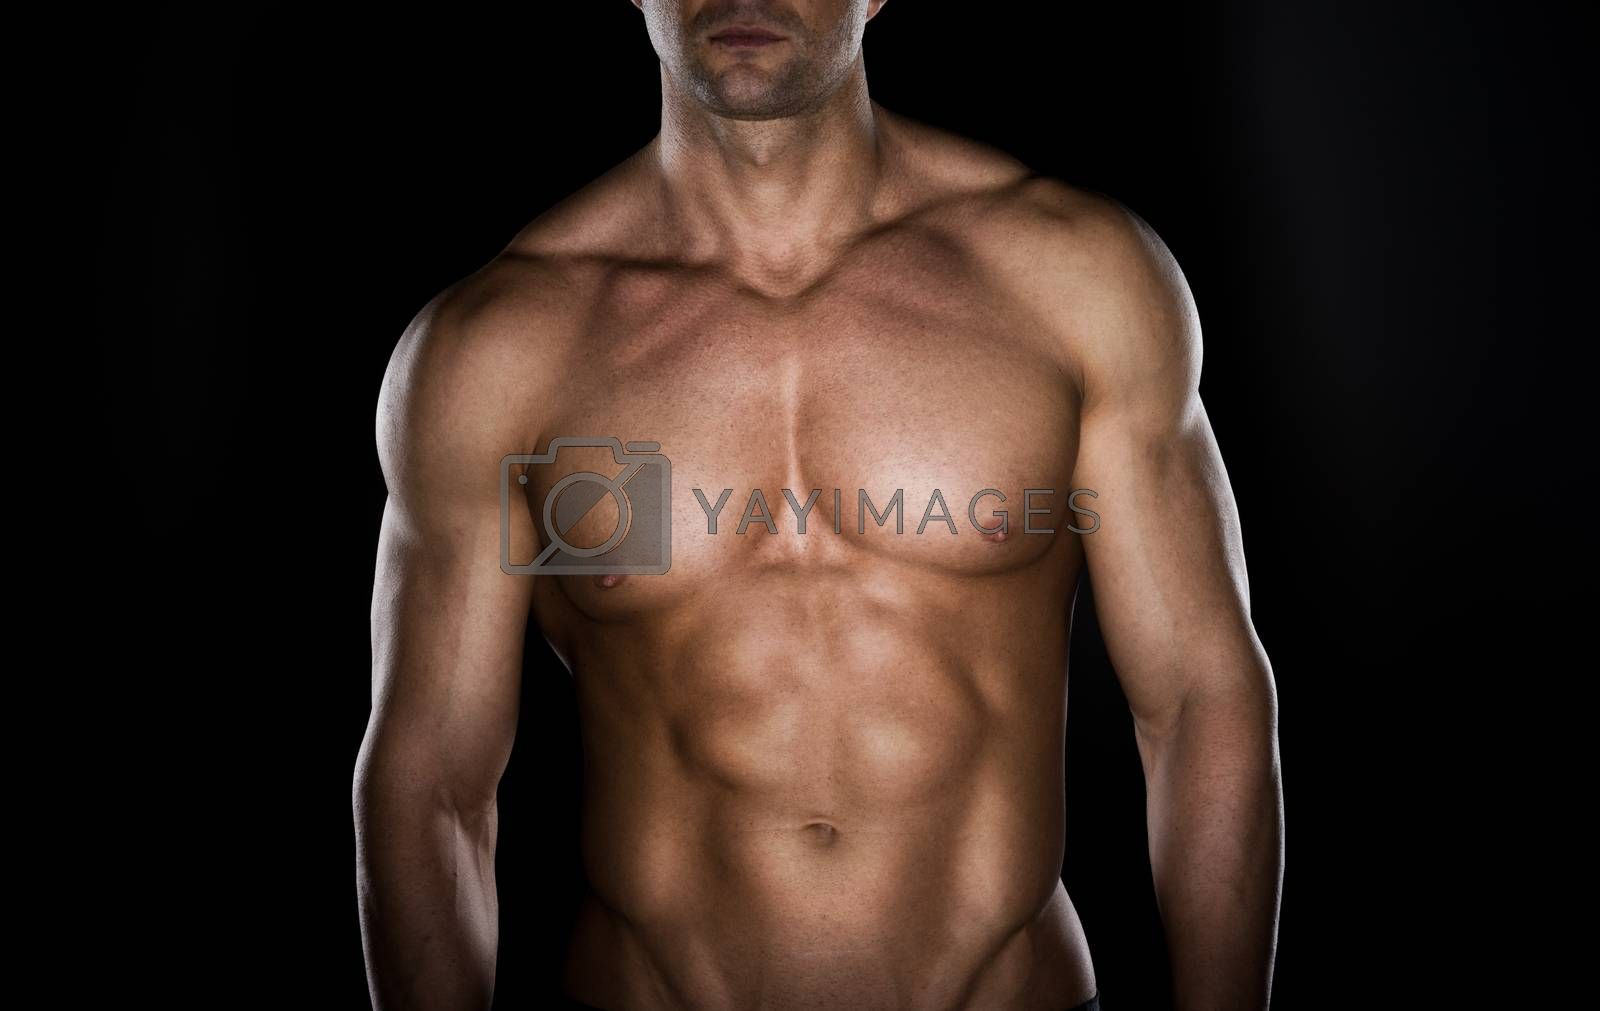 Bare chested muscular man looking down on dark background.